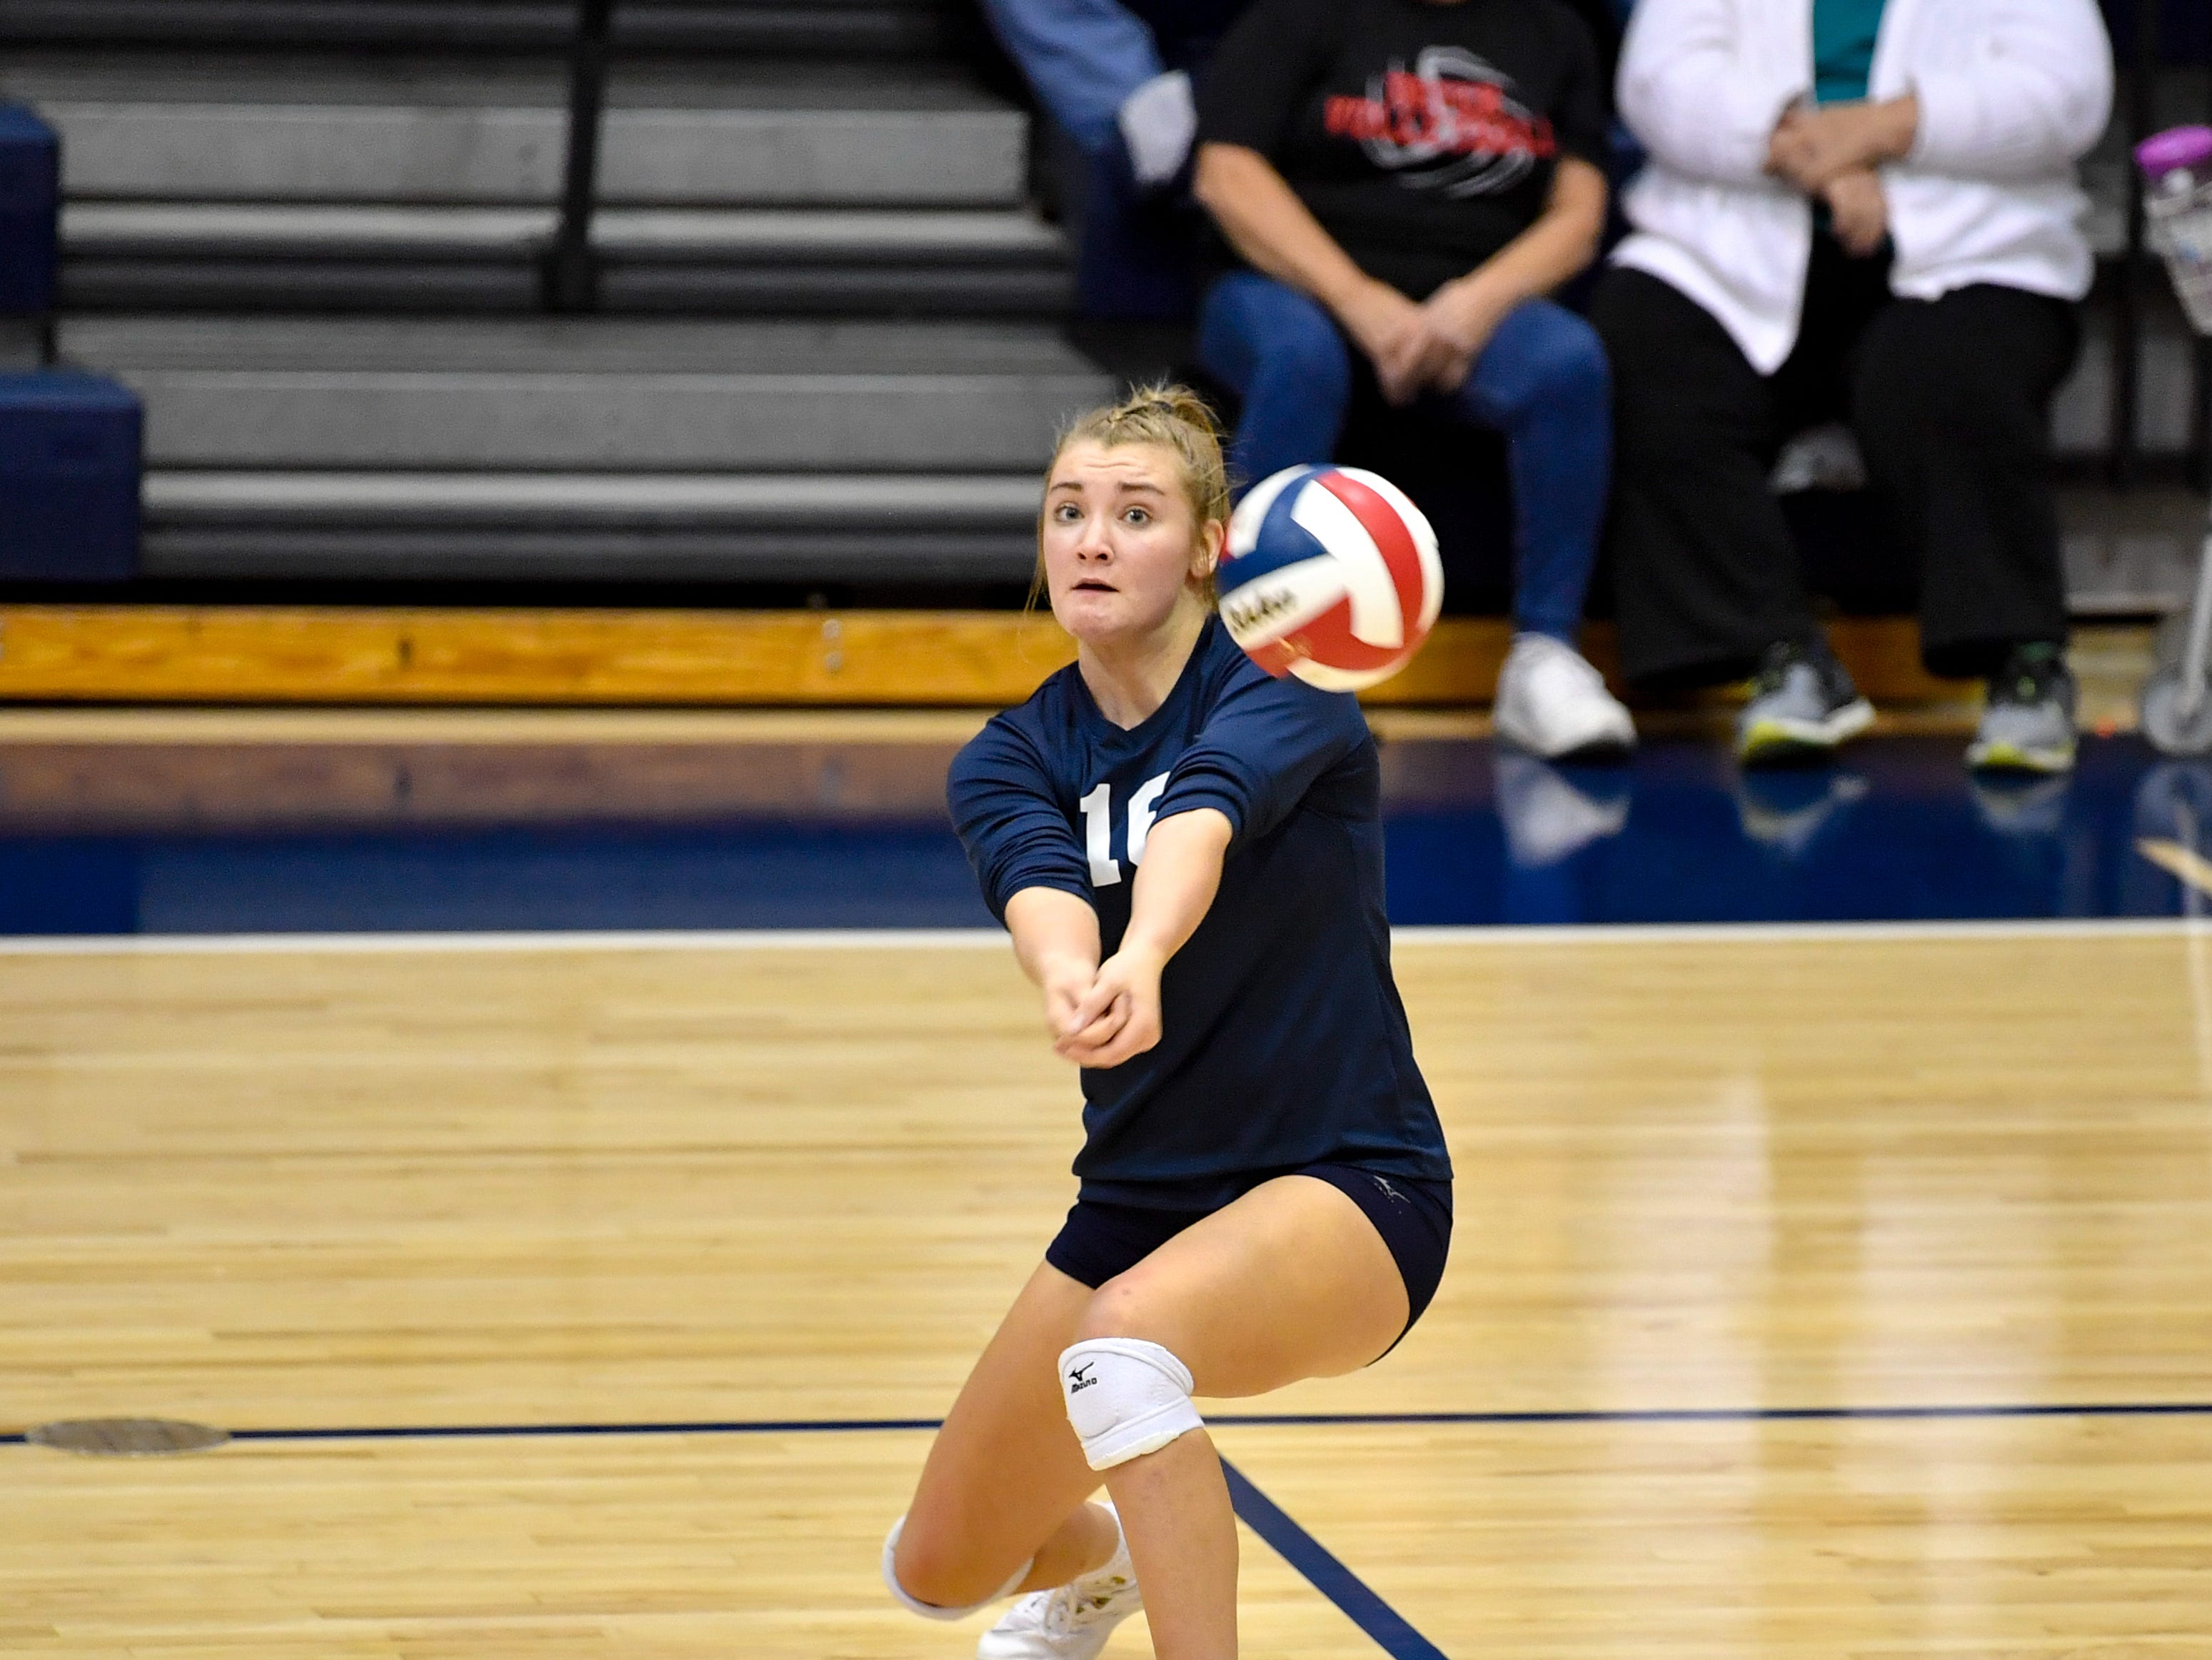 Georgianna Kahley (16) narrowly misses the ball during the YAIAA league volleyball tournament semifinals between West York and Dover, Tuesday, October 23, 2018. The Bulldogs defeated the Eagles 3-1.